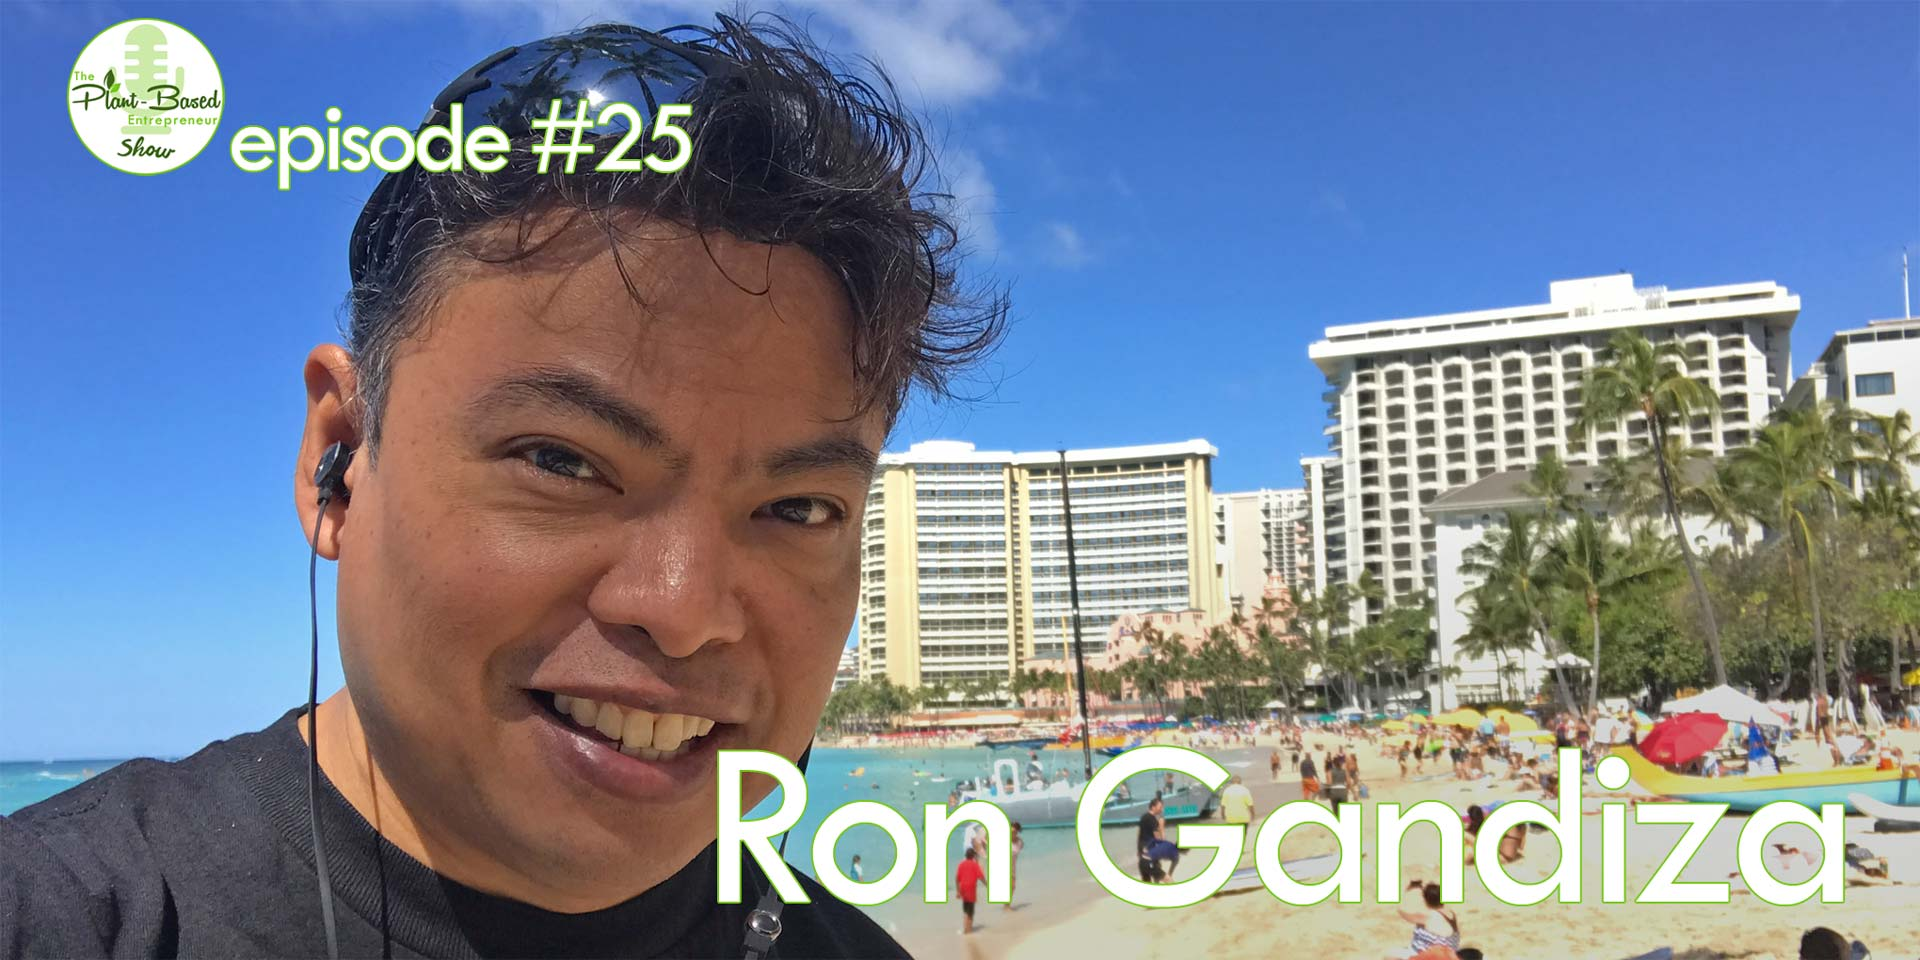 Episode #25 - Ron Gandiza